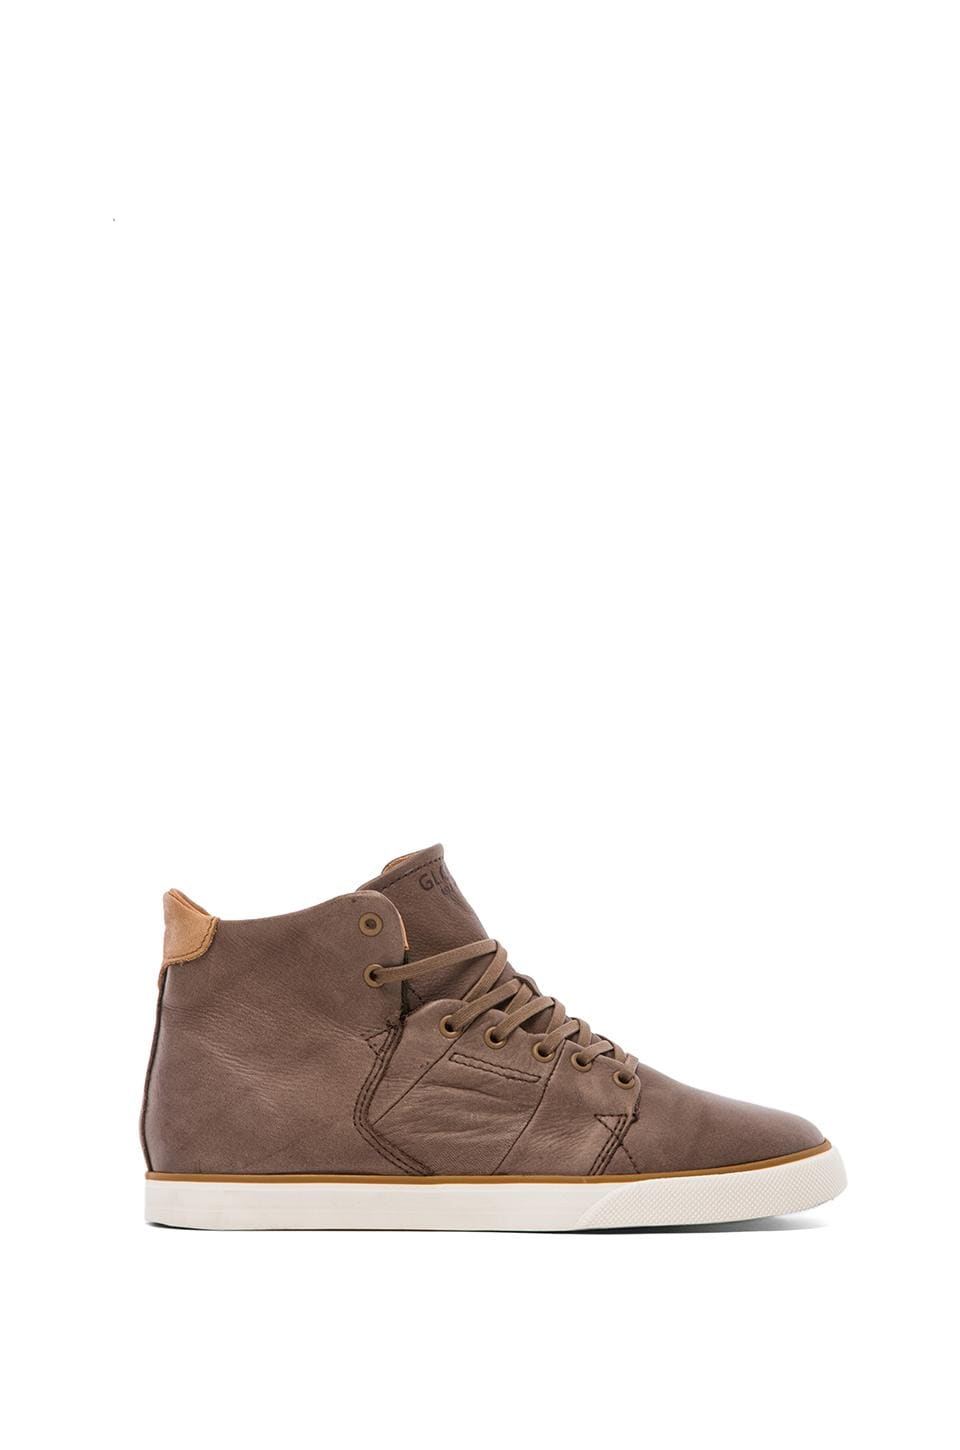 Globe Los Angered Sneaker in Brown Fog